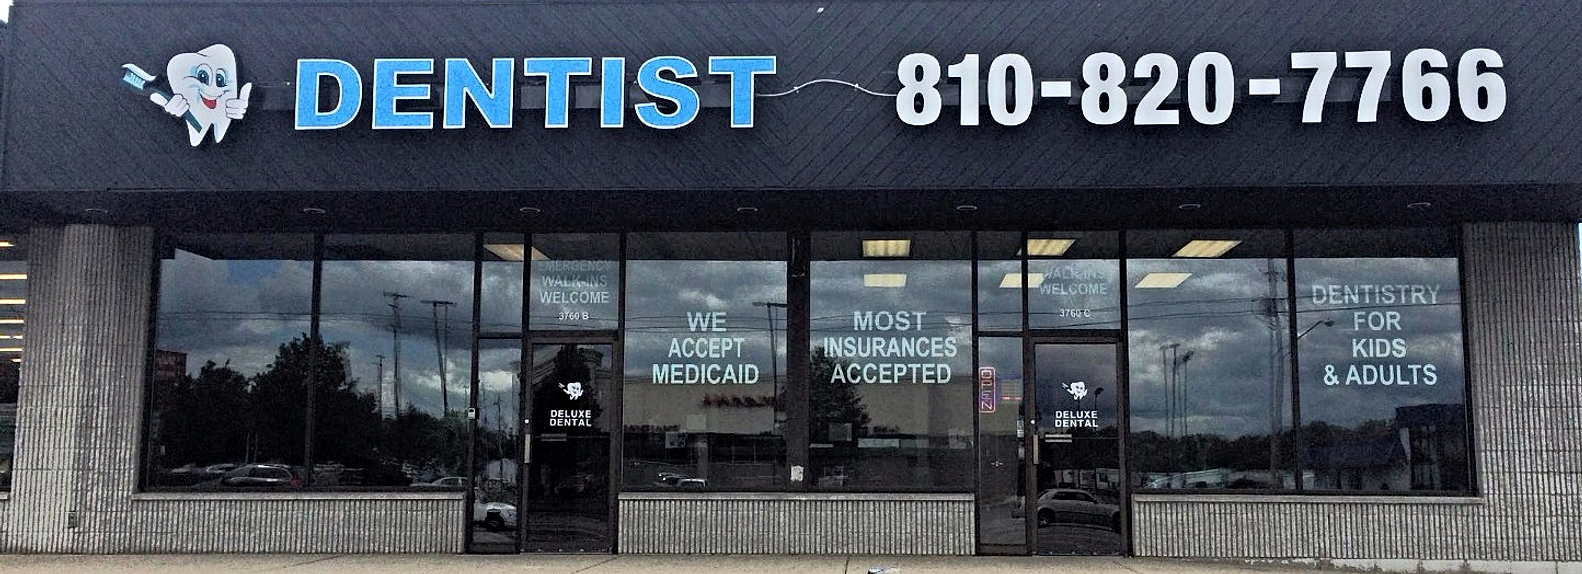 Do most dentists accept Medicaid?